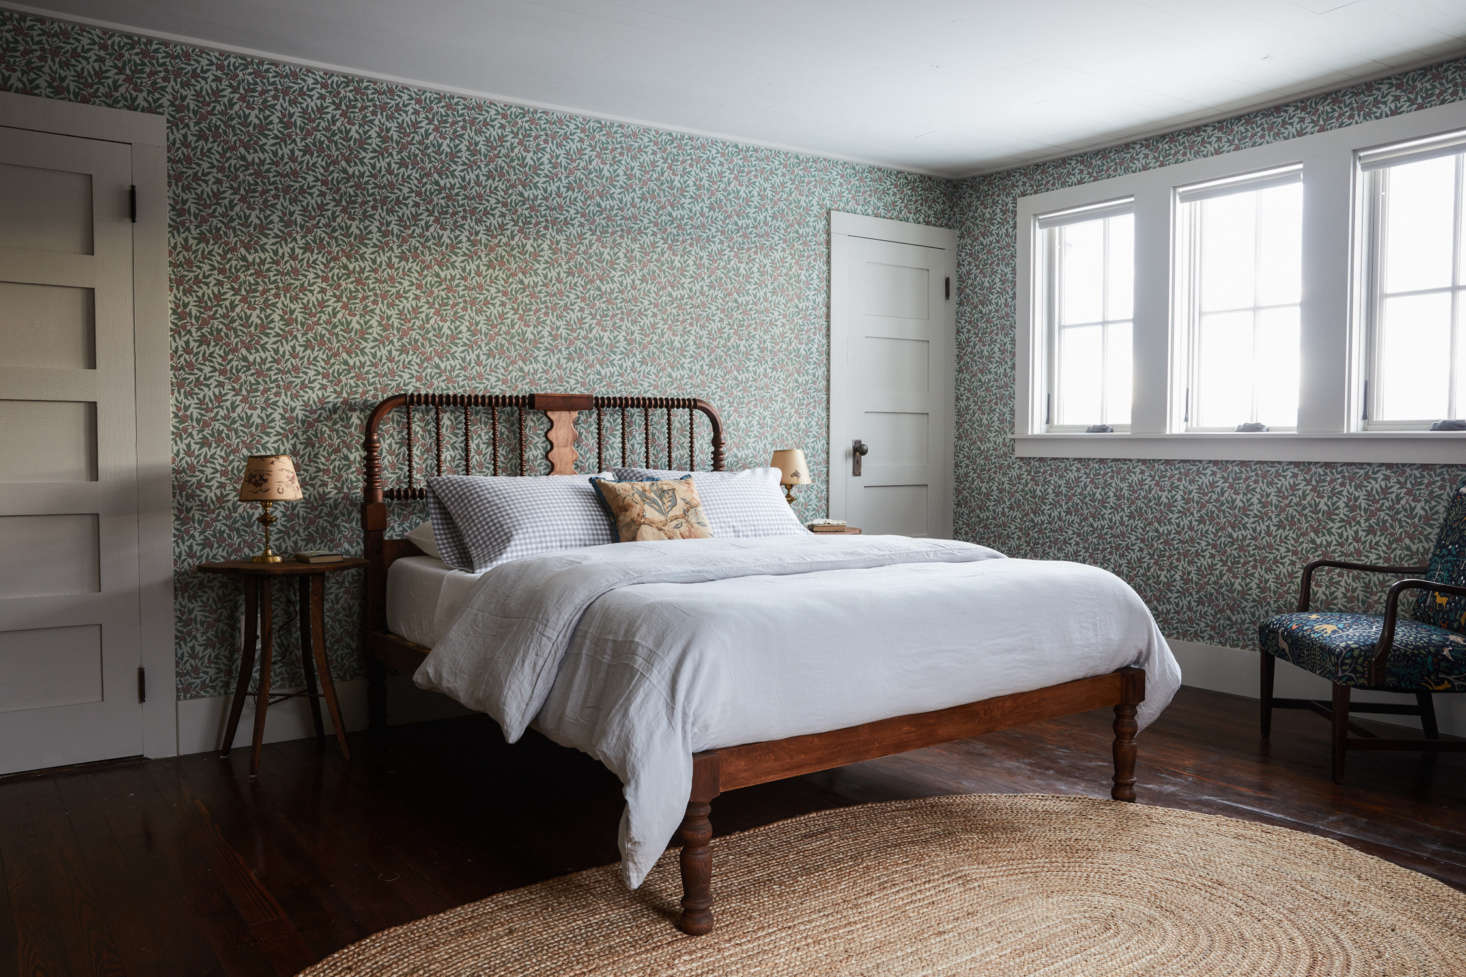 The Jill guest rooms feature wallpaper from Bradbury and Bradbury. Percy fashioned the bed for this room, as well as the adjacent Jack room, by using the head and foot boards of a vintage Jenny Lind bed.